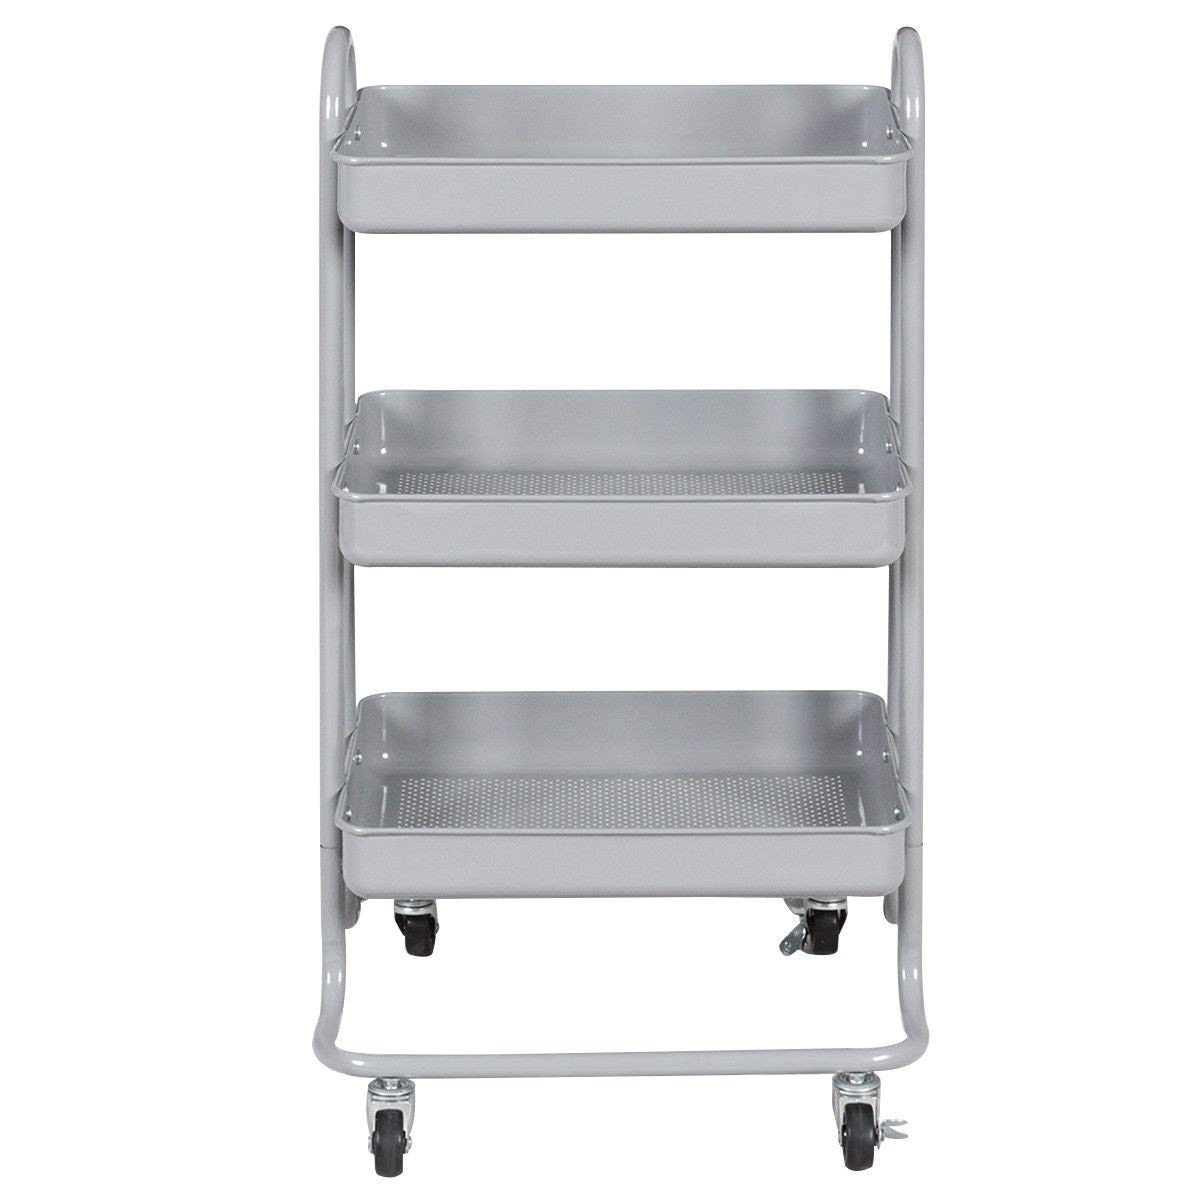 MyEasyShopping 3-Tier Steel Rolling Kitchen Trolley Cart Kitchen Trolley Rolling Island Wood Drawers Dining Rack Cabinet W Tier